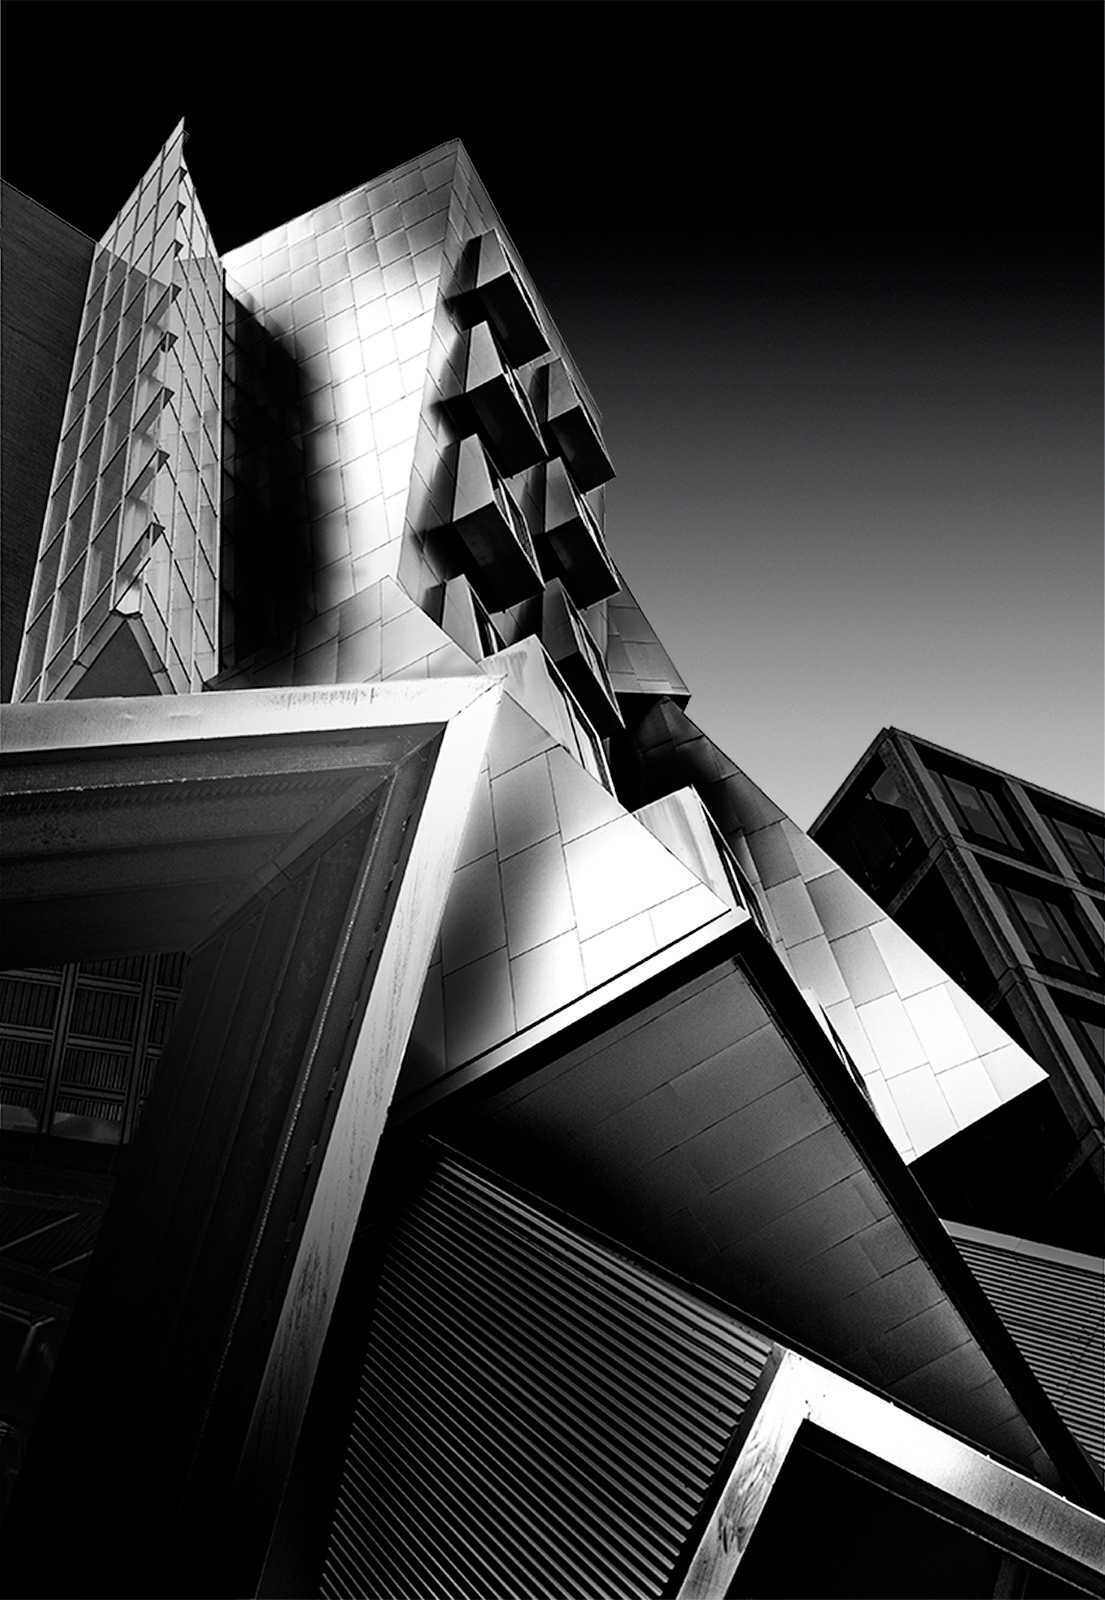 Angles by Larry Dunn